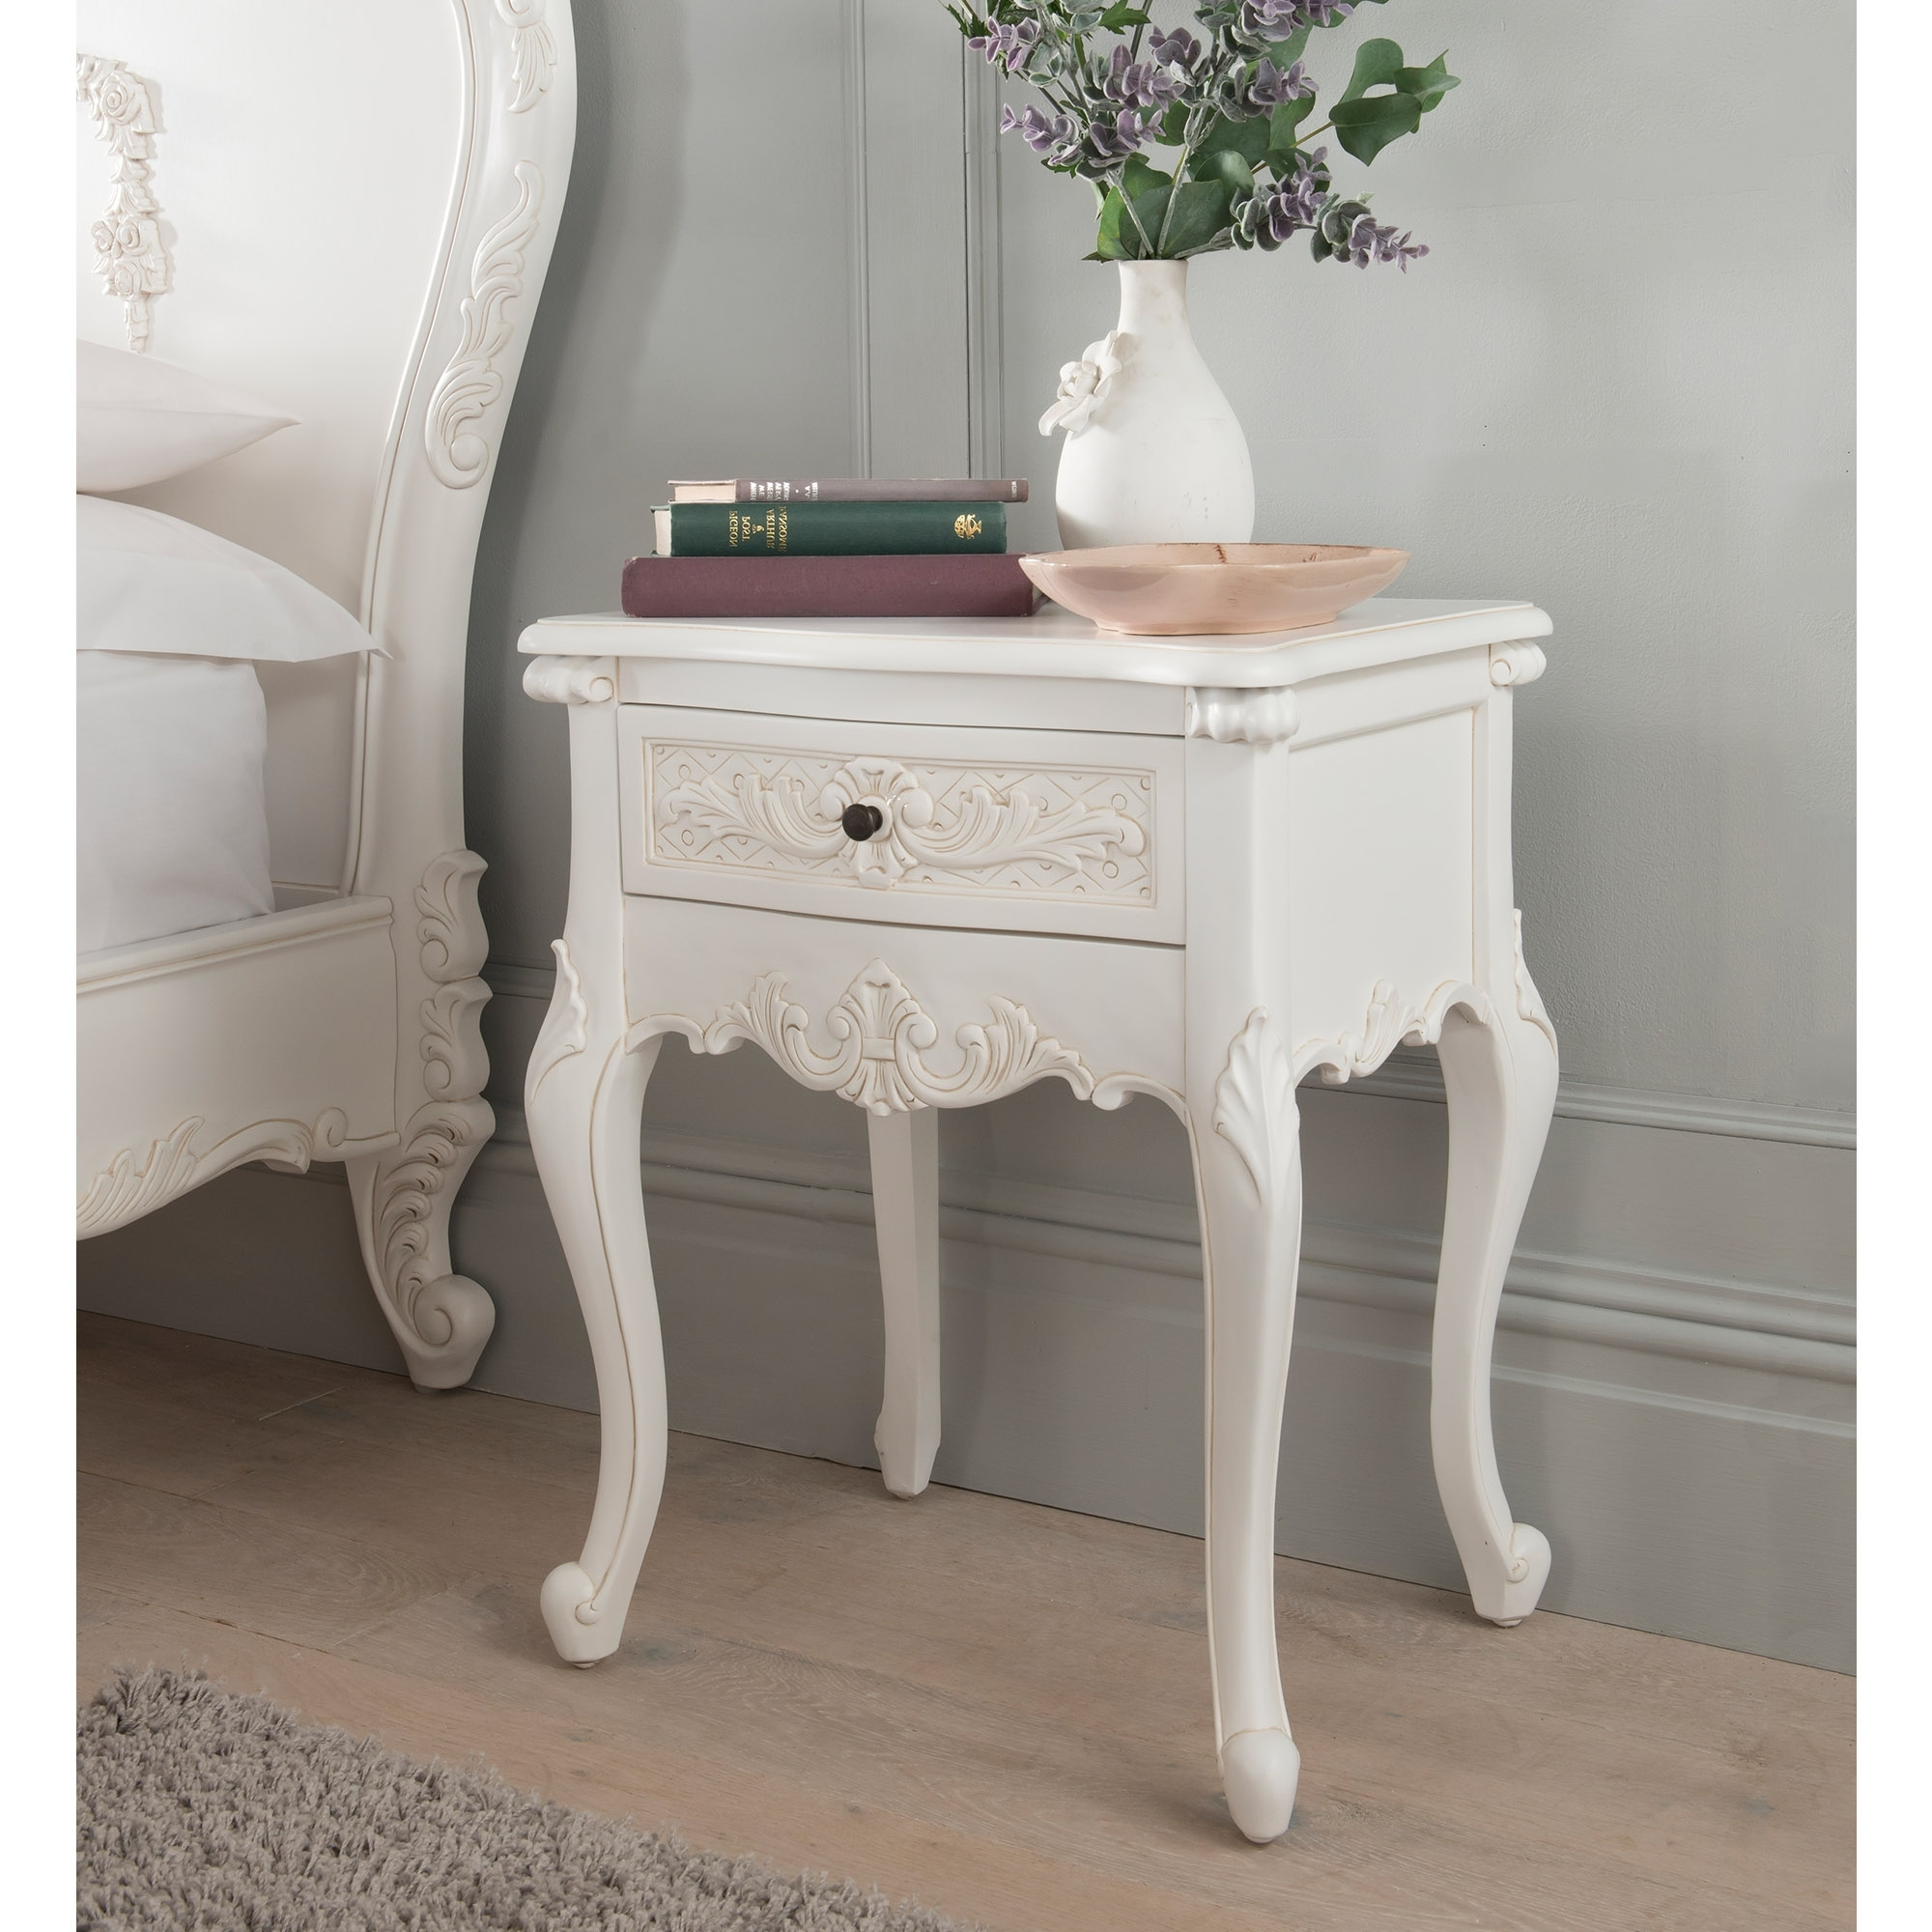 Antique Style Bedside Tables Image Collections Bar